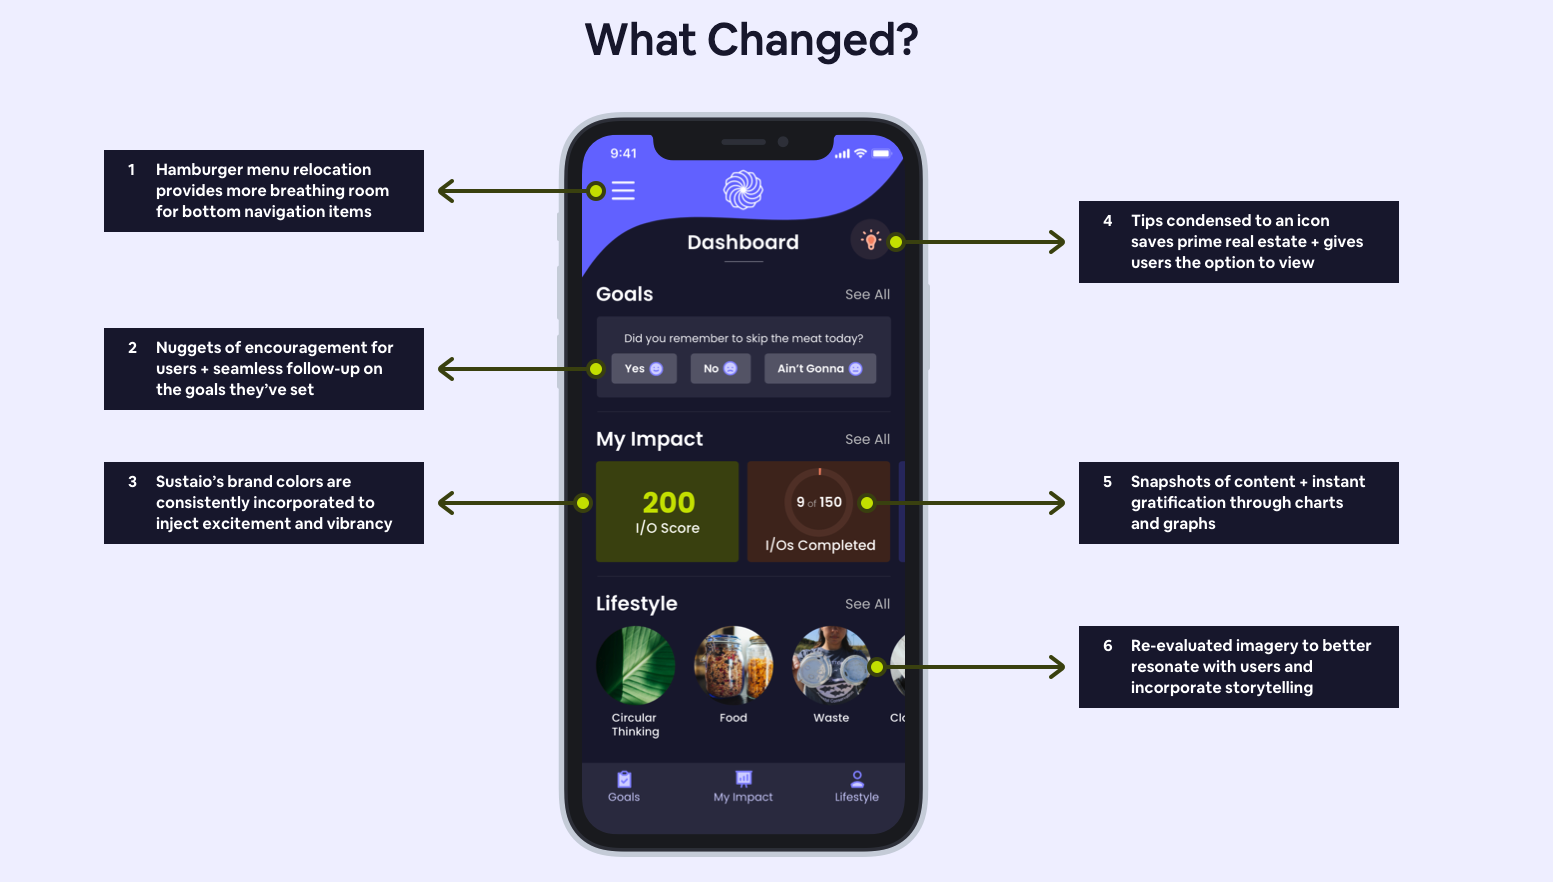 """A mobile phone screen is centered against a lilac background with the text """"What Changed?"""" at the top. There are annotations pointing out the changes made to an interface over time."""